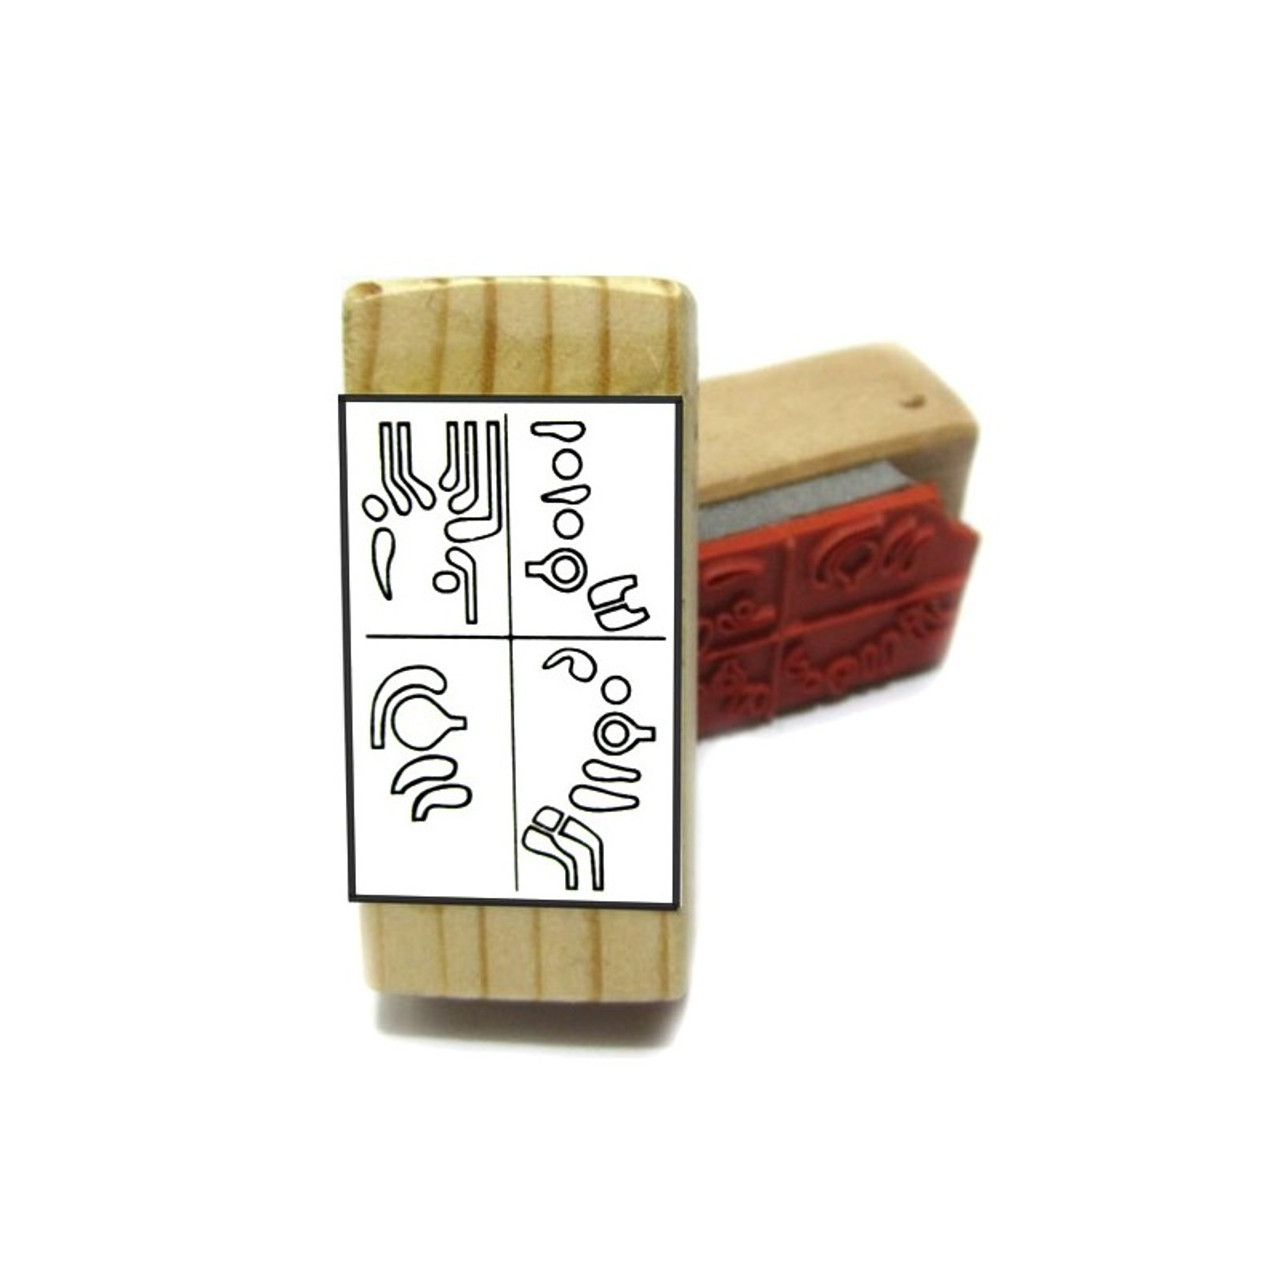 Bassoon Fingering Rubber Stamp